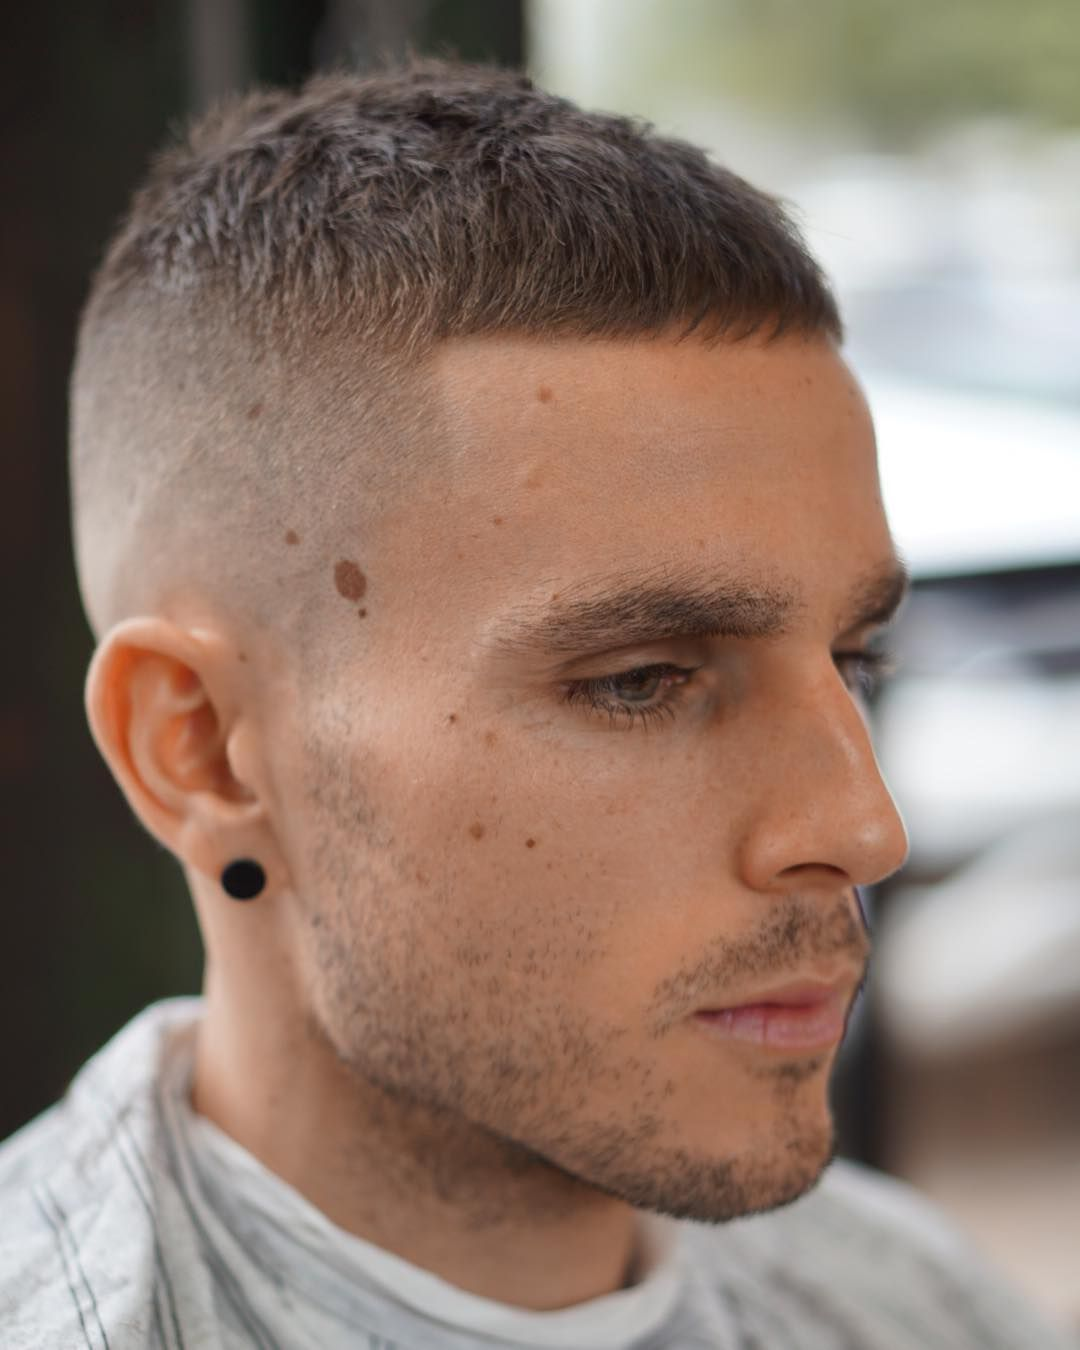 High And Tight Haircuts Cool Men S Styles For 2020 High And Tight Haircut High Fade Haircut High And Tight